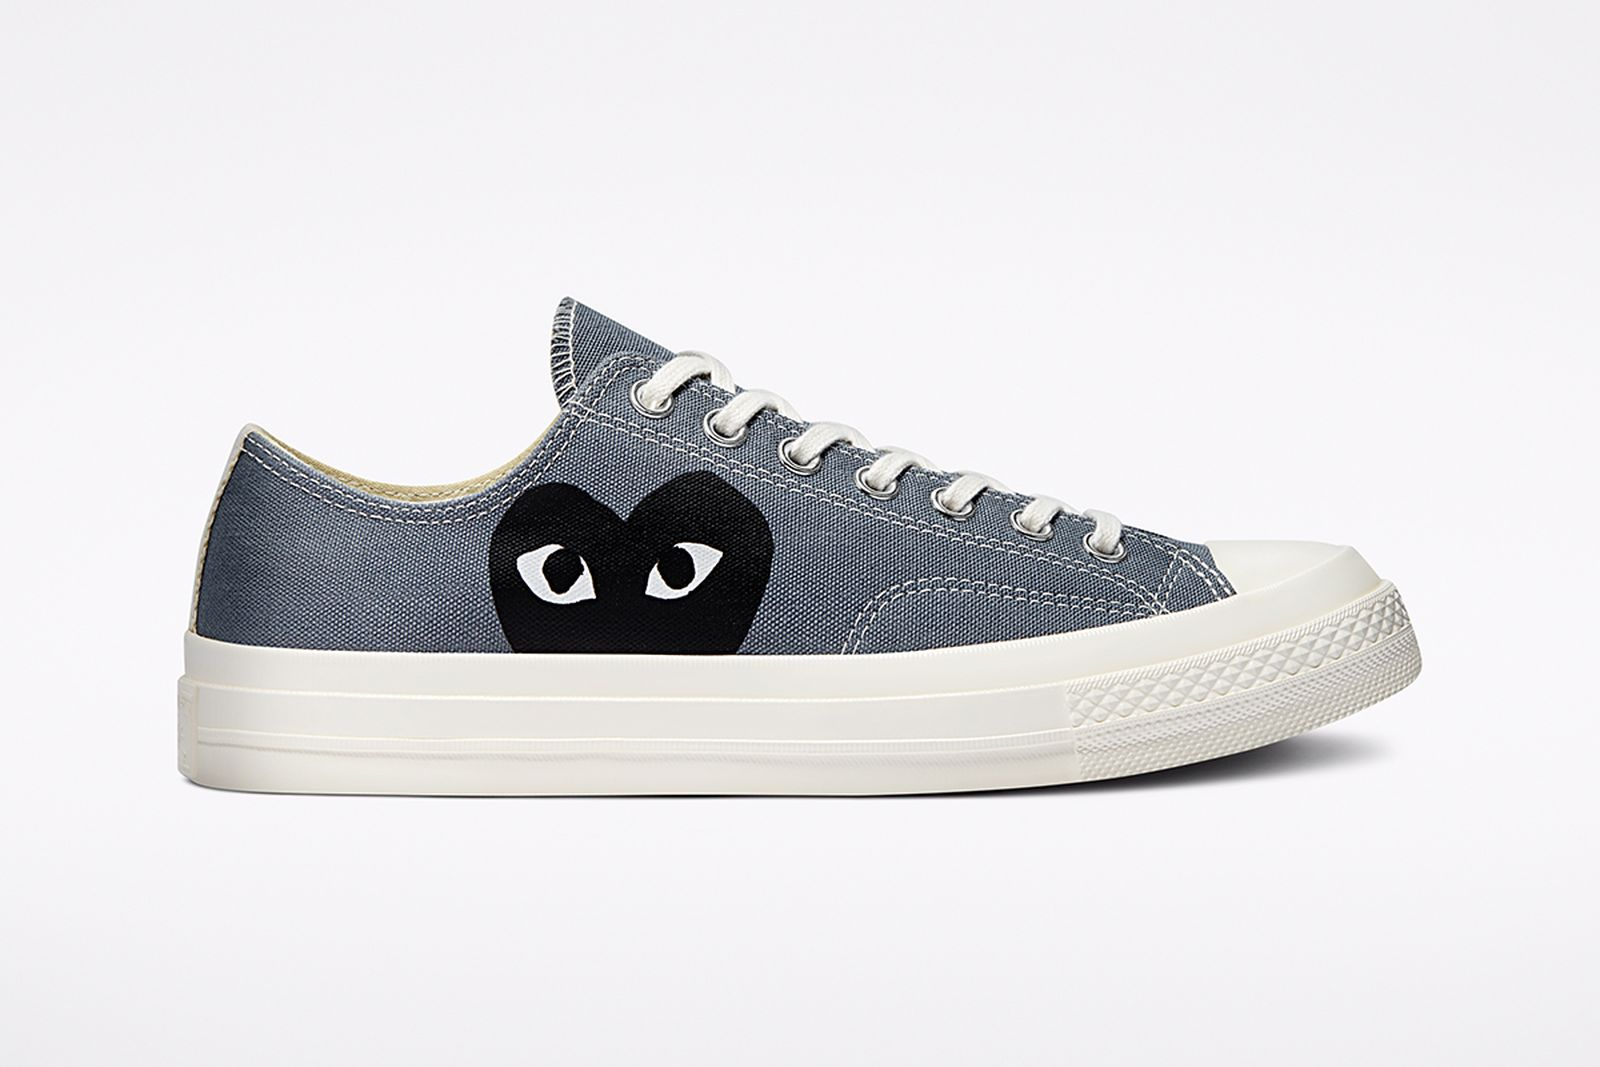 comme-des-garcons-play-converse-chuck-70-blue-gray-release-date-price-1-13